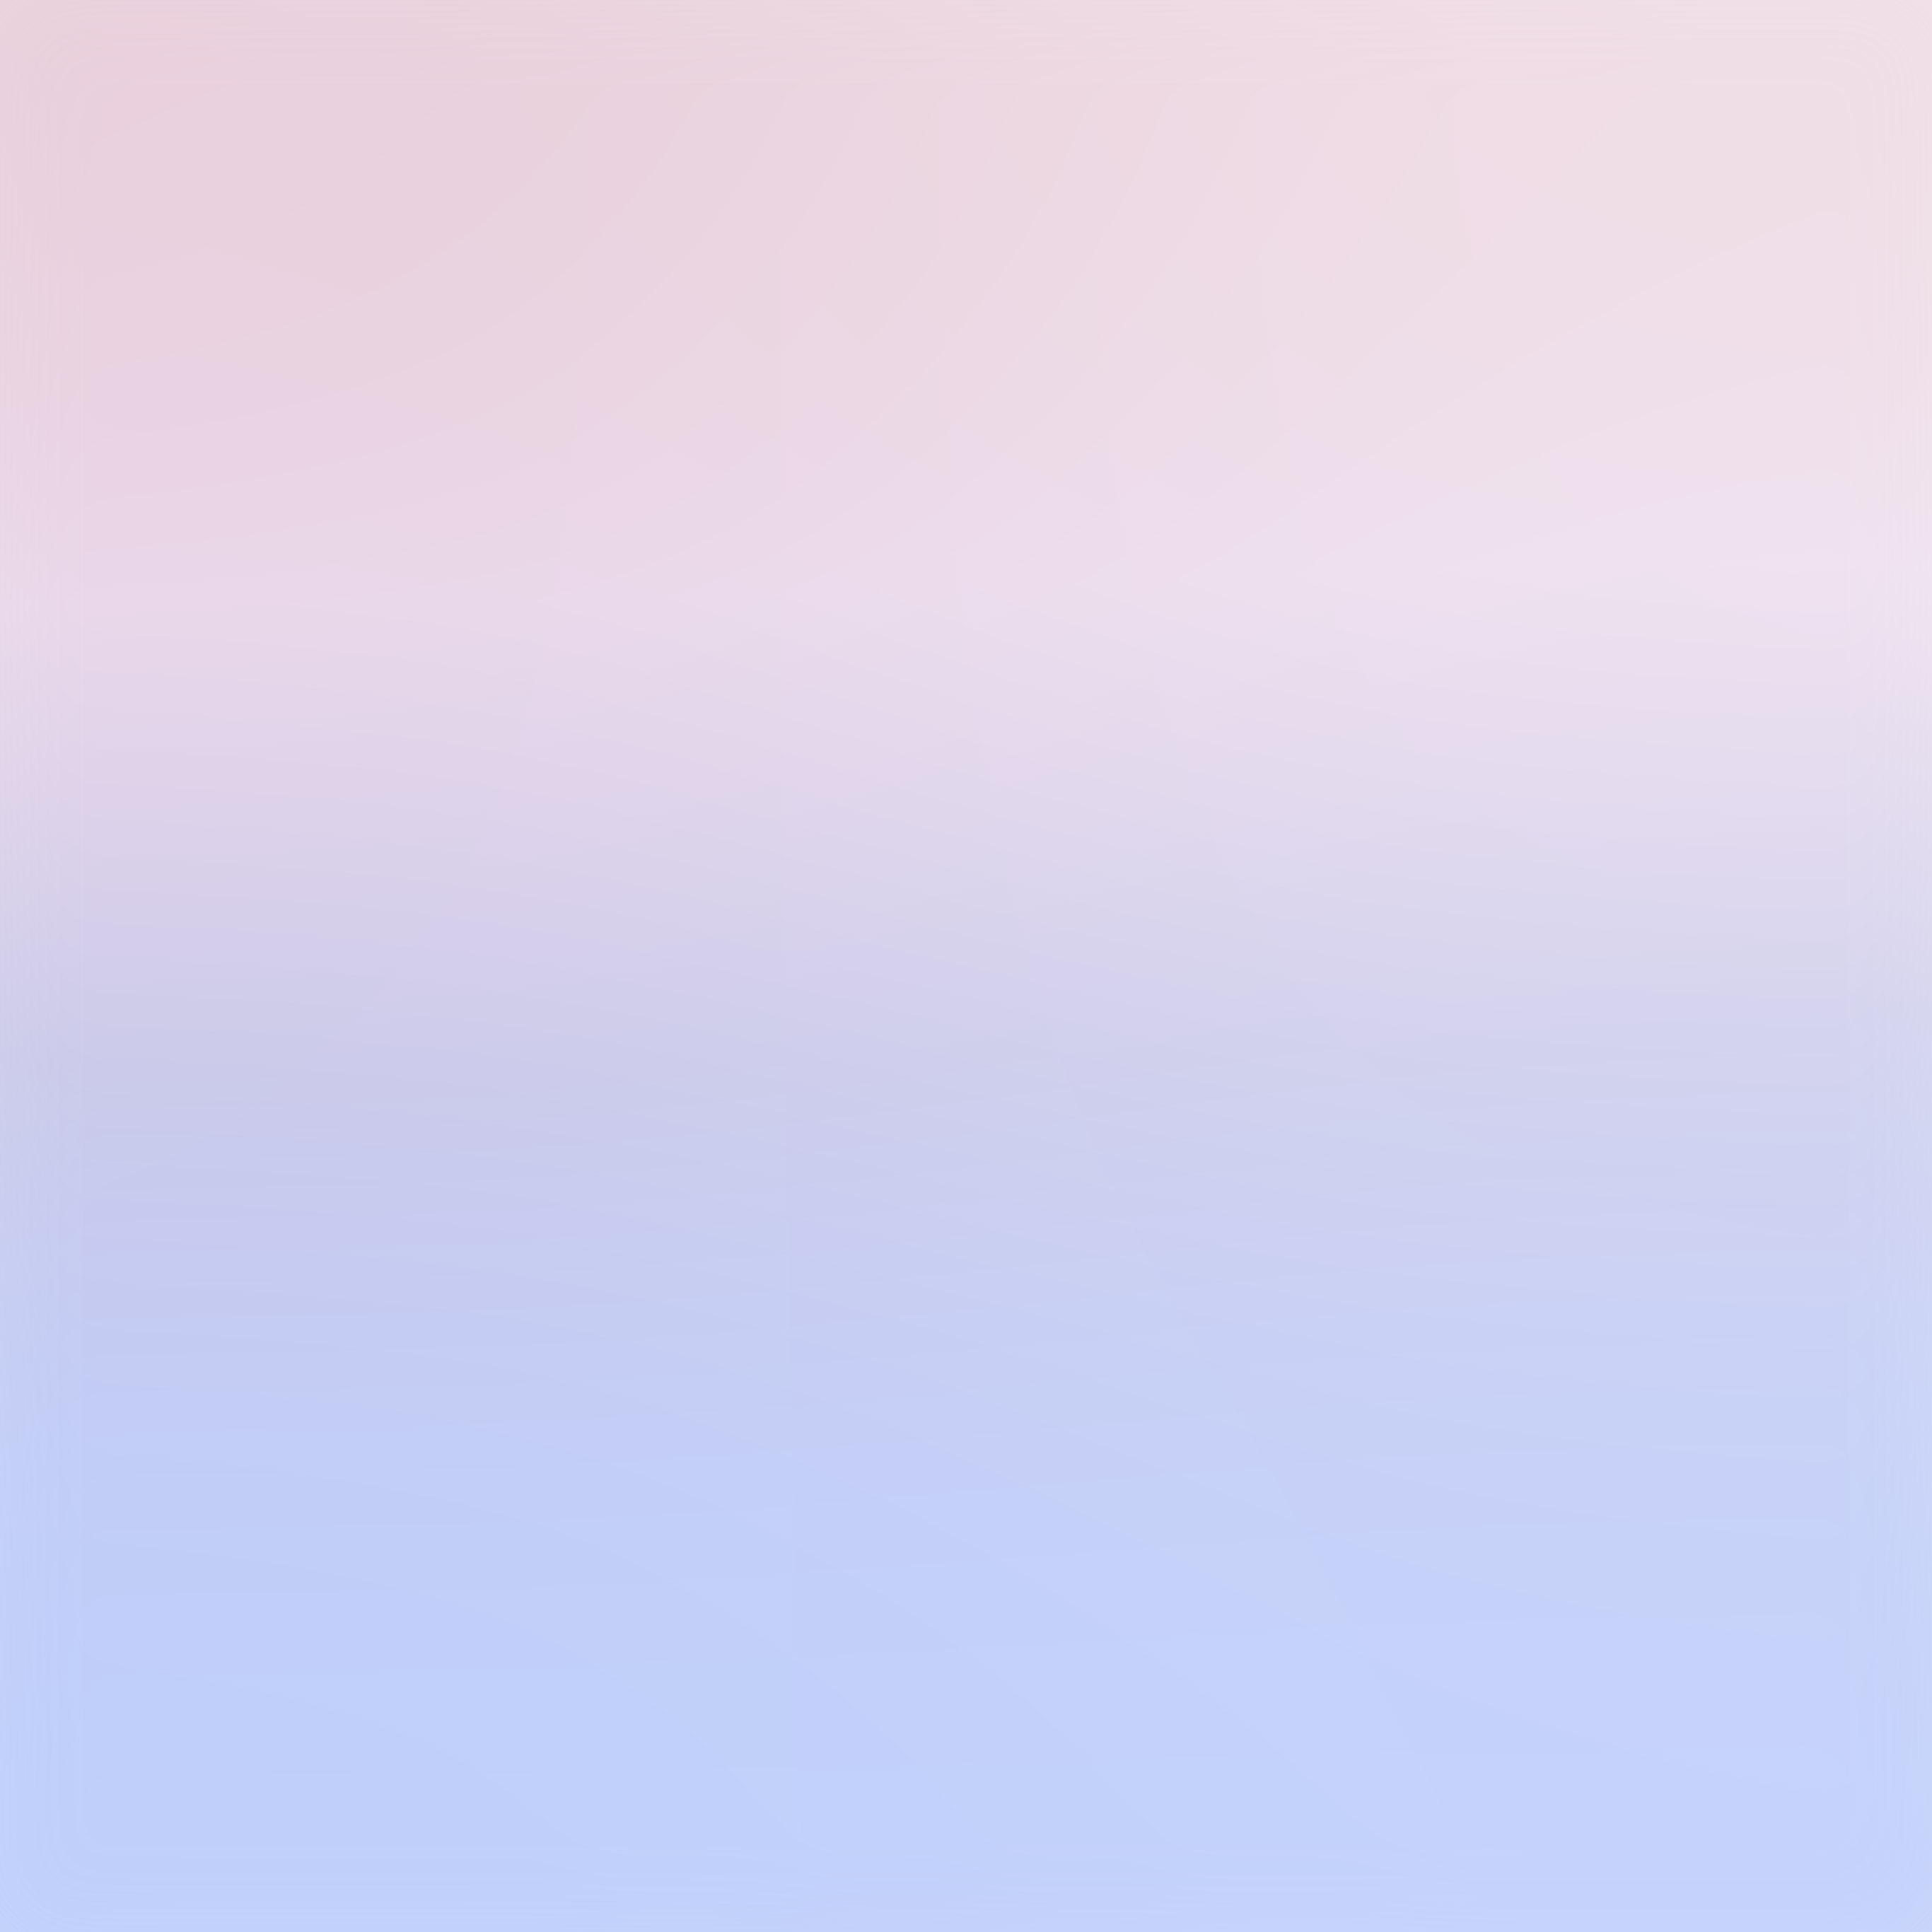 Papers Co Android Wallpaper Sm55 Pastel Blue Red Morning Blur Gradation